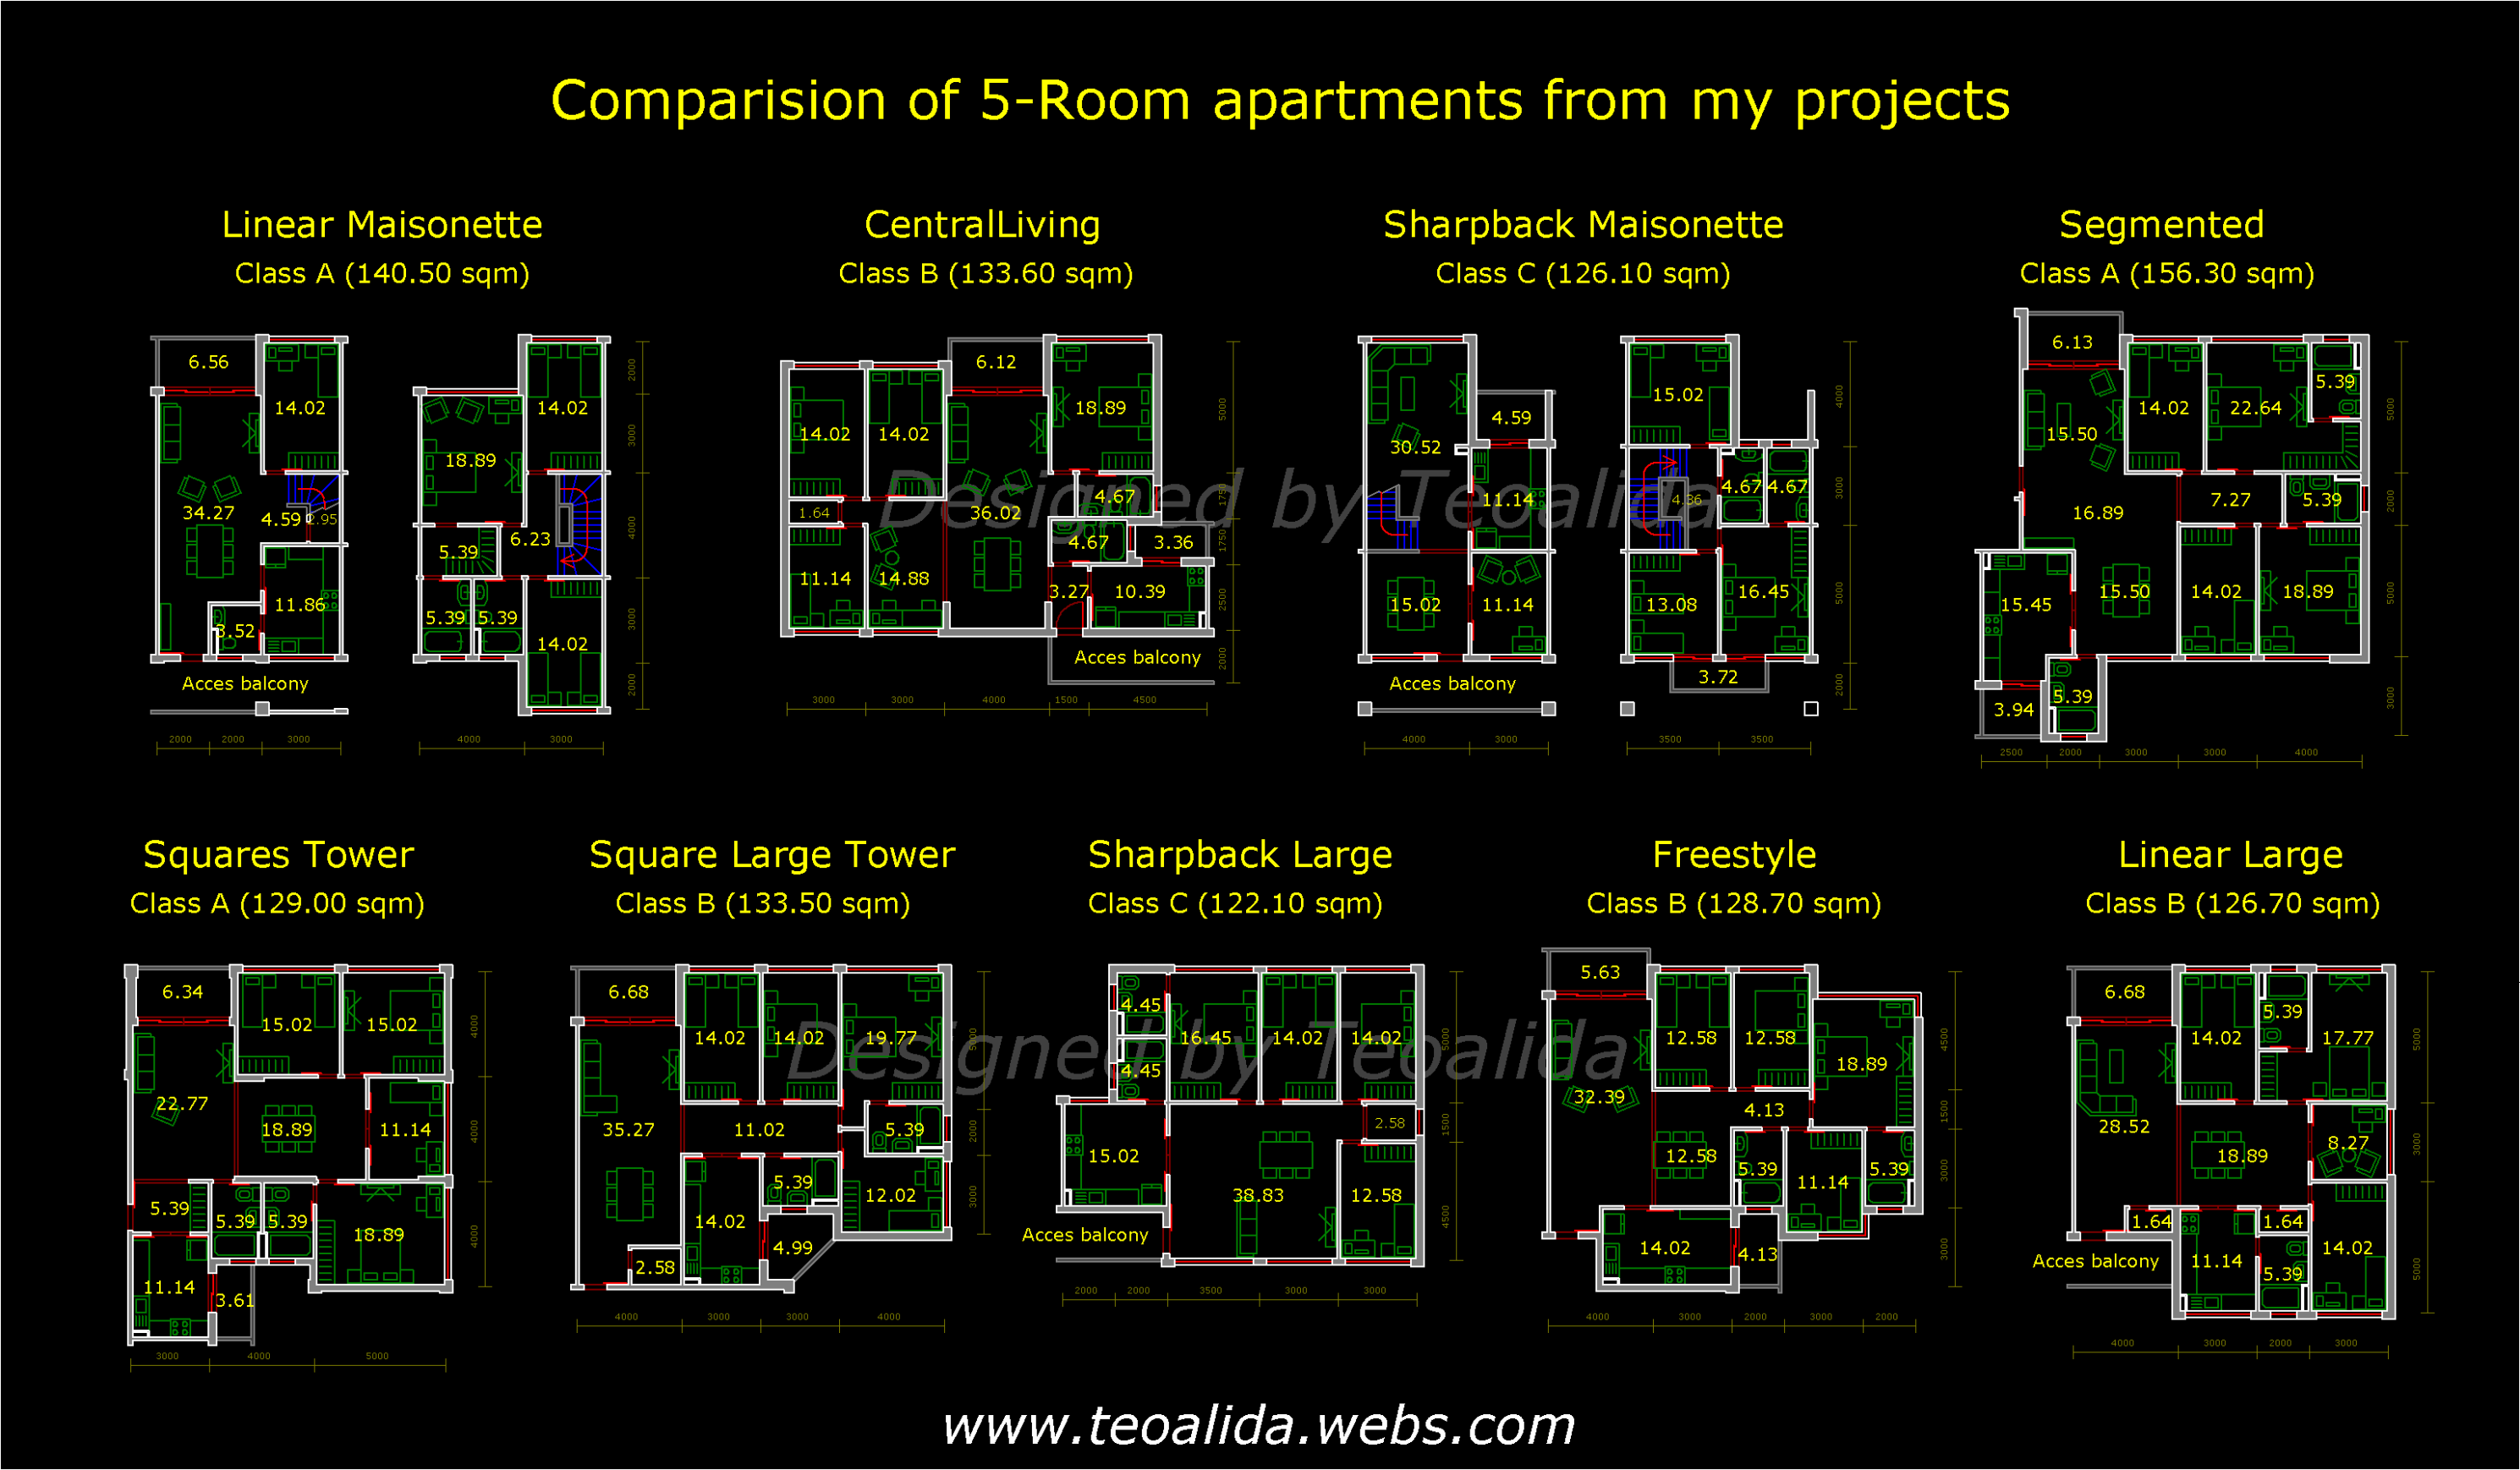 Apartment plans 10-10 sqm designed by me - Teoalida's website